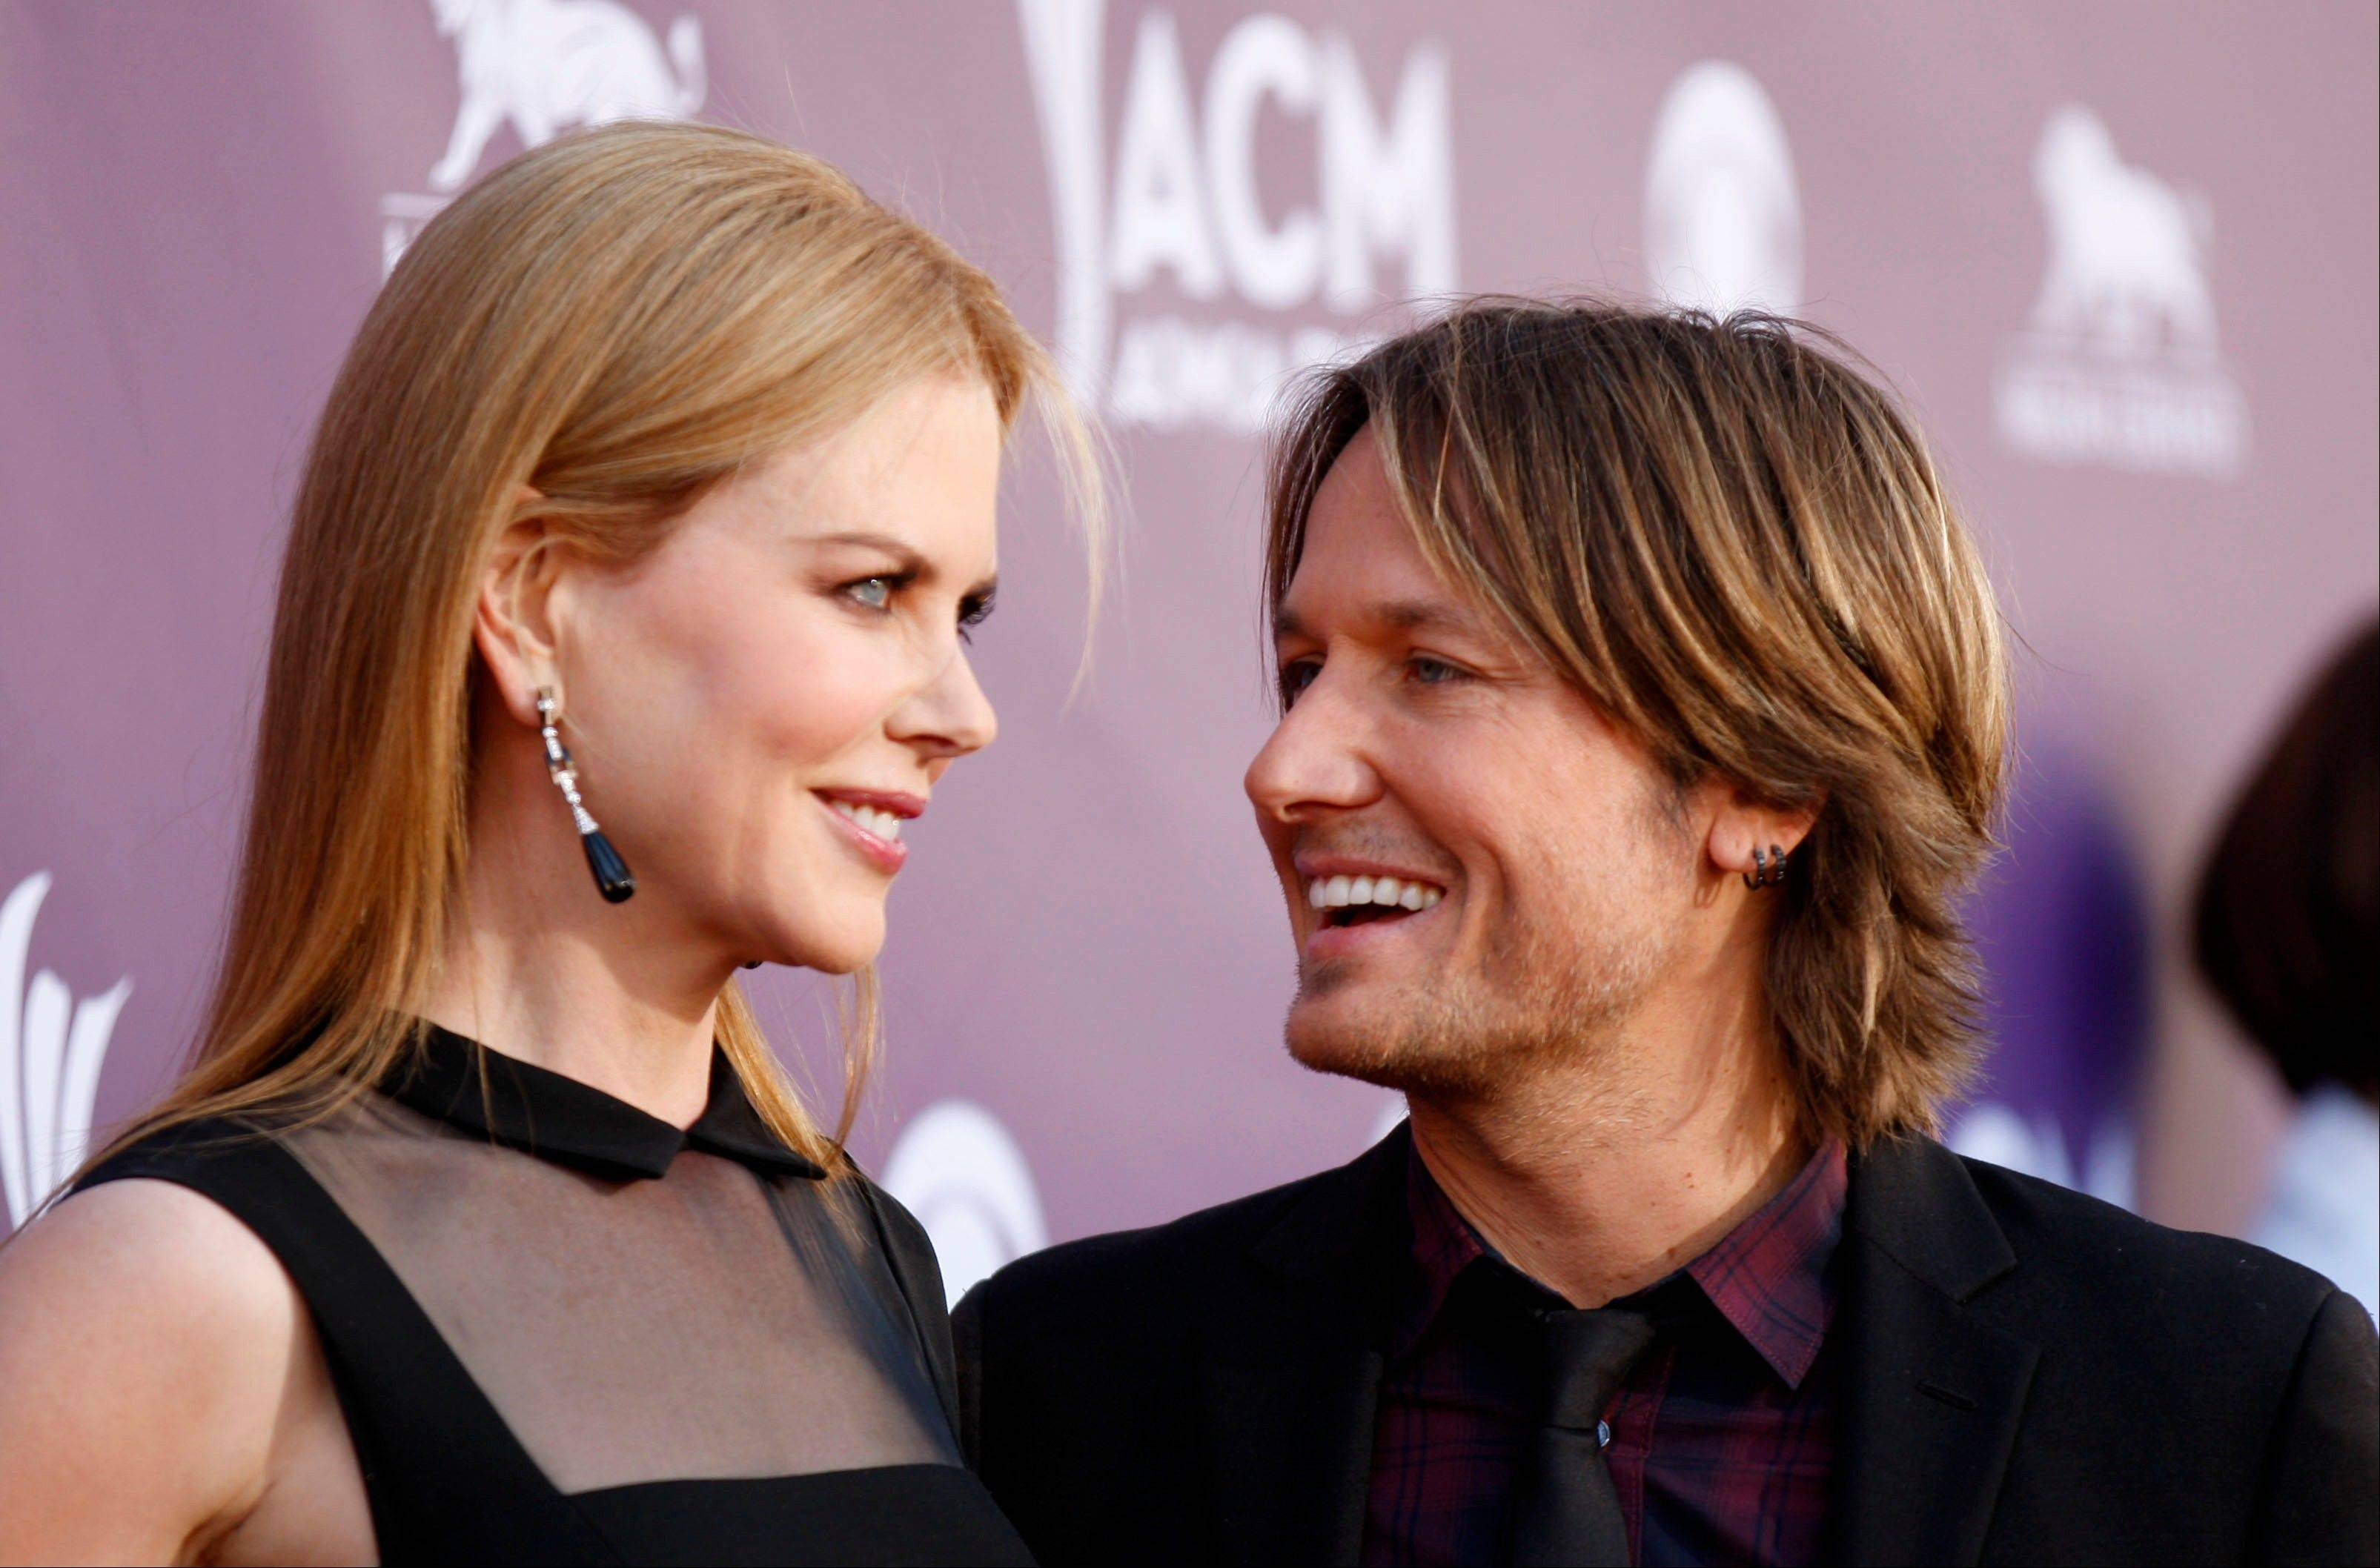 Nicole Kidman and Keith Urban are all smiles as they make their way into the ceremony Sunday.